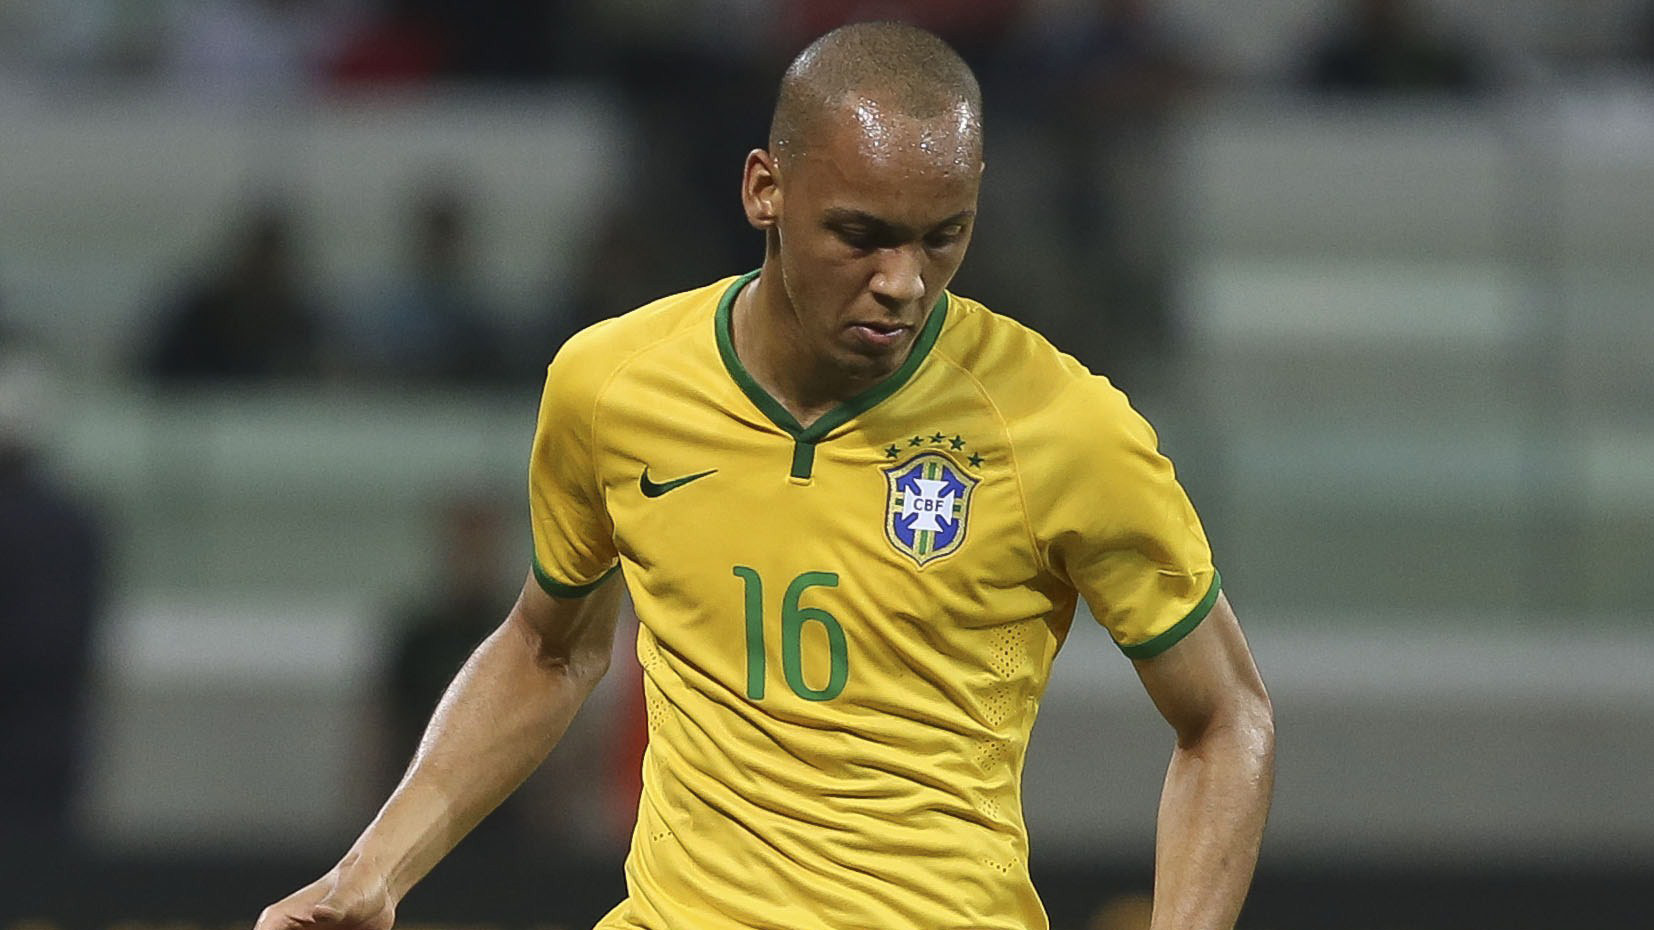 As Mourinho prepares Fabinho move, is Valencia finally out?